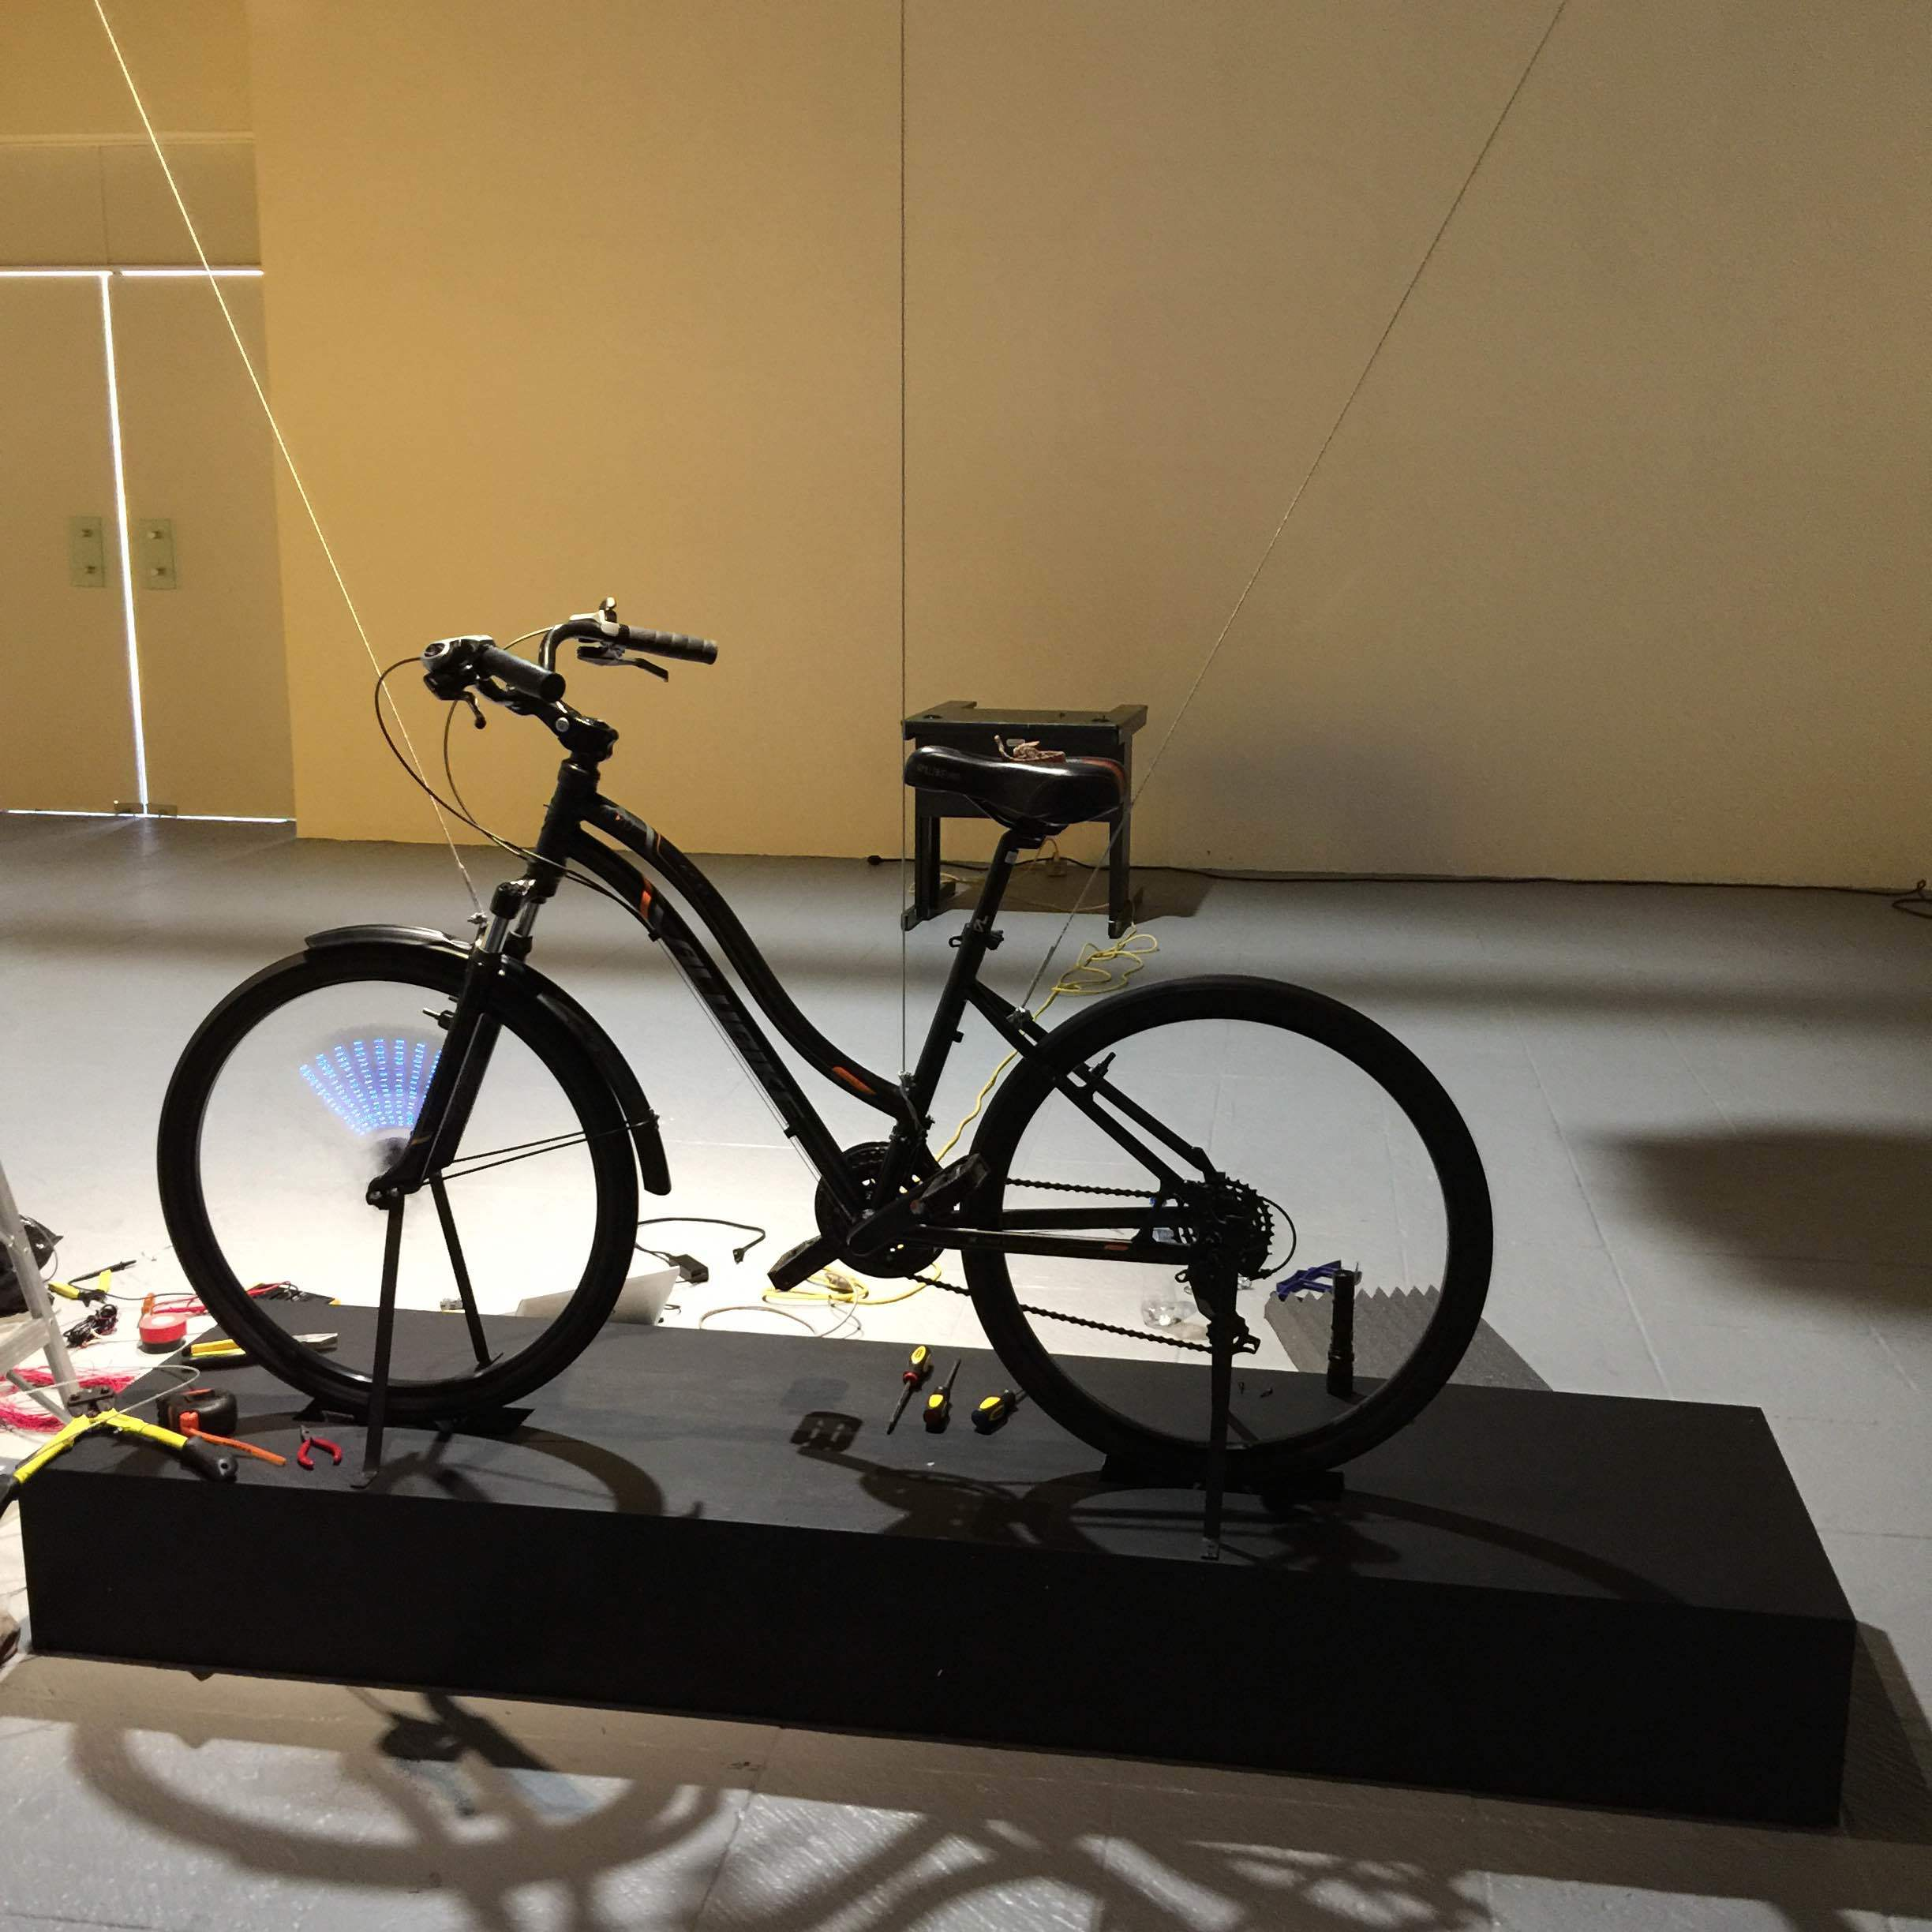 FOR ARTISTS - Interaction design for an art exhibit